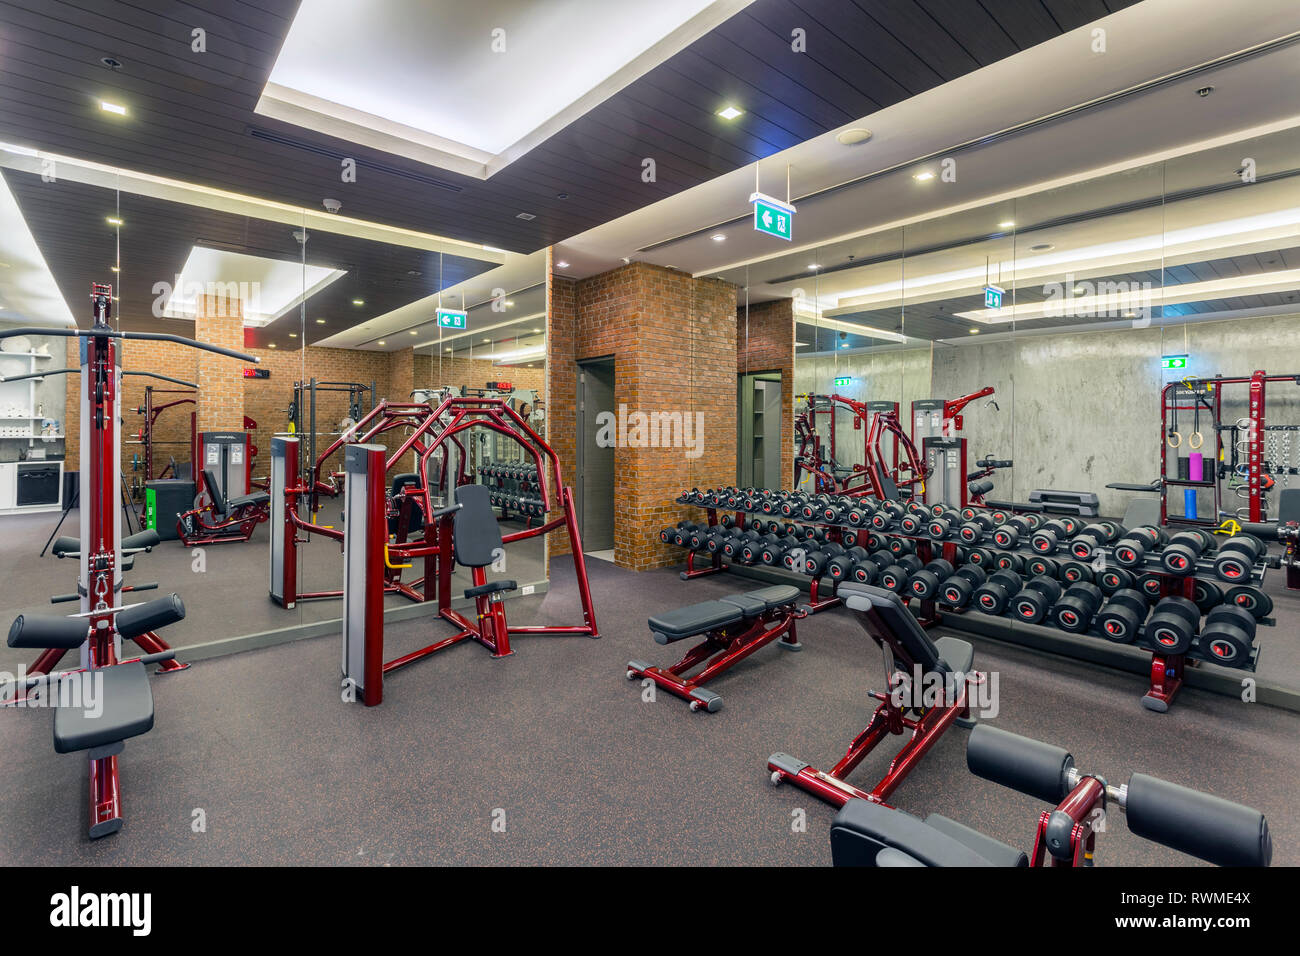 Peachy Fitness Centre And Health Club In The Luxury Resort Hotel Interior Design Ideas Skatsoteloinfo